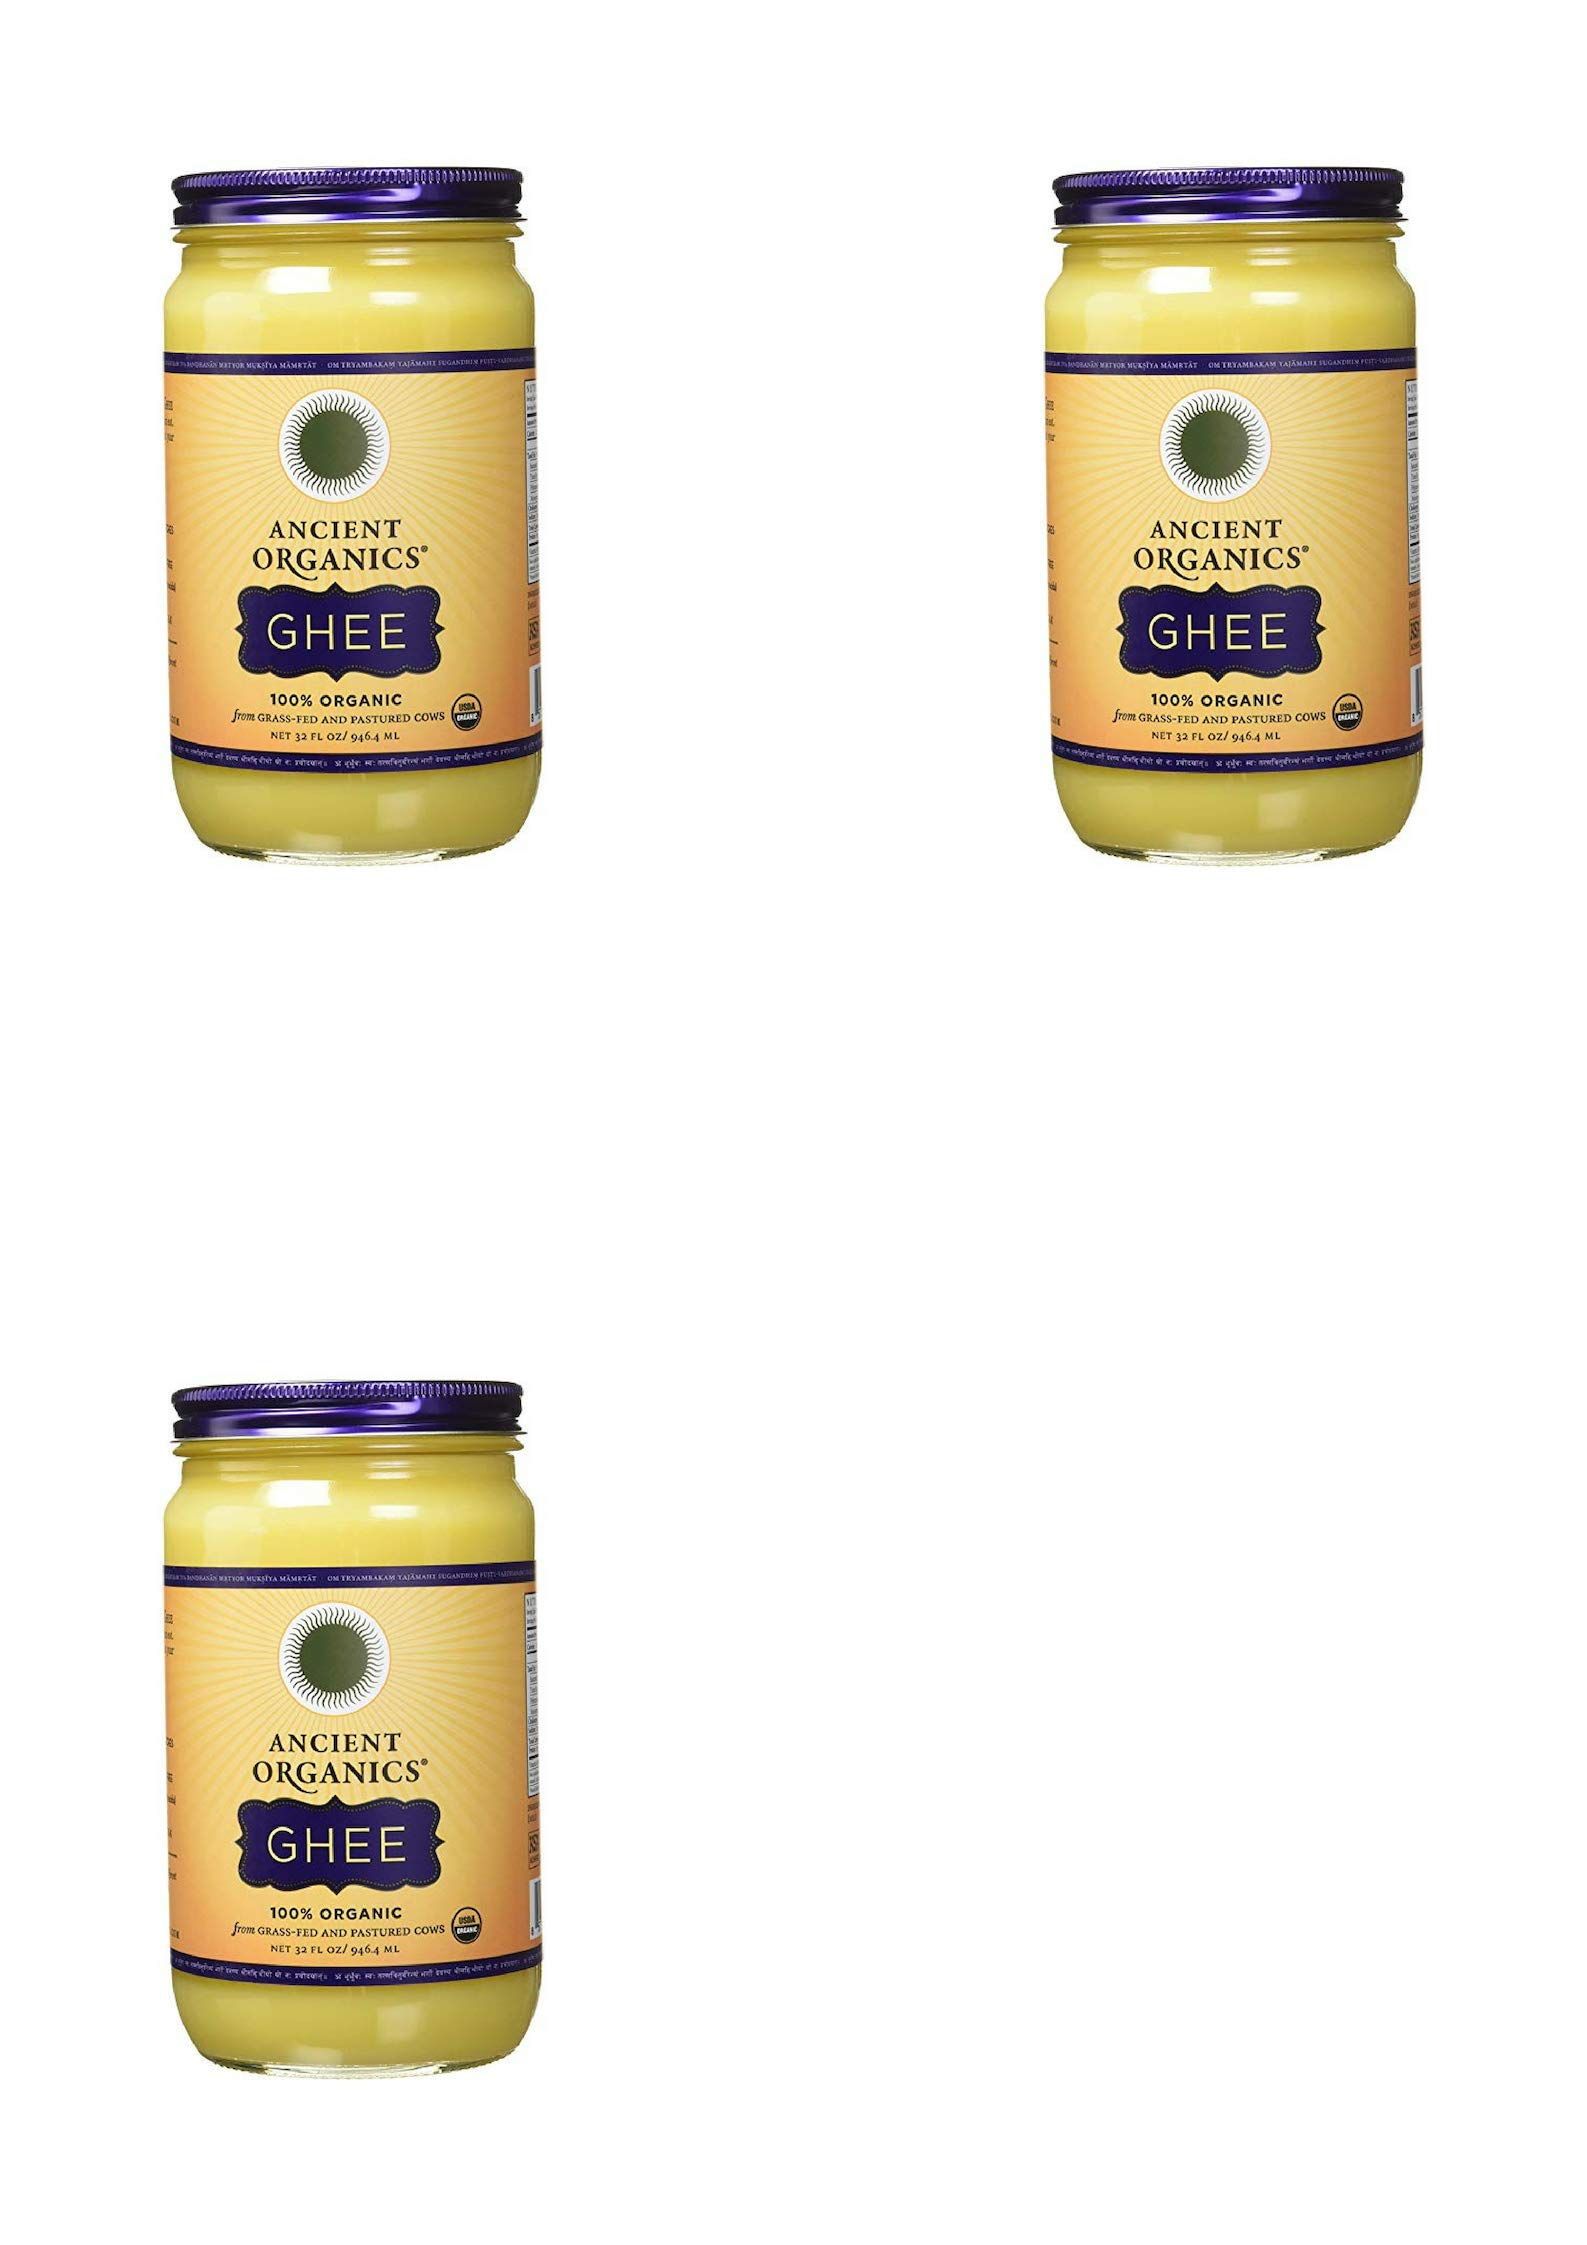 ANCIENT ORGANICS 100% Organic Ghee from Grass-fed Cows, 32oz (3 pack)